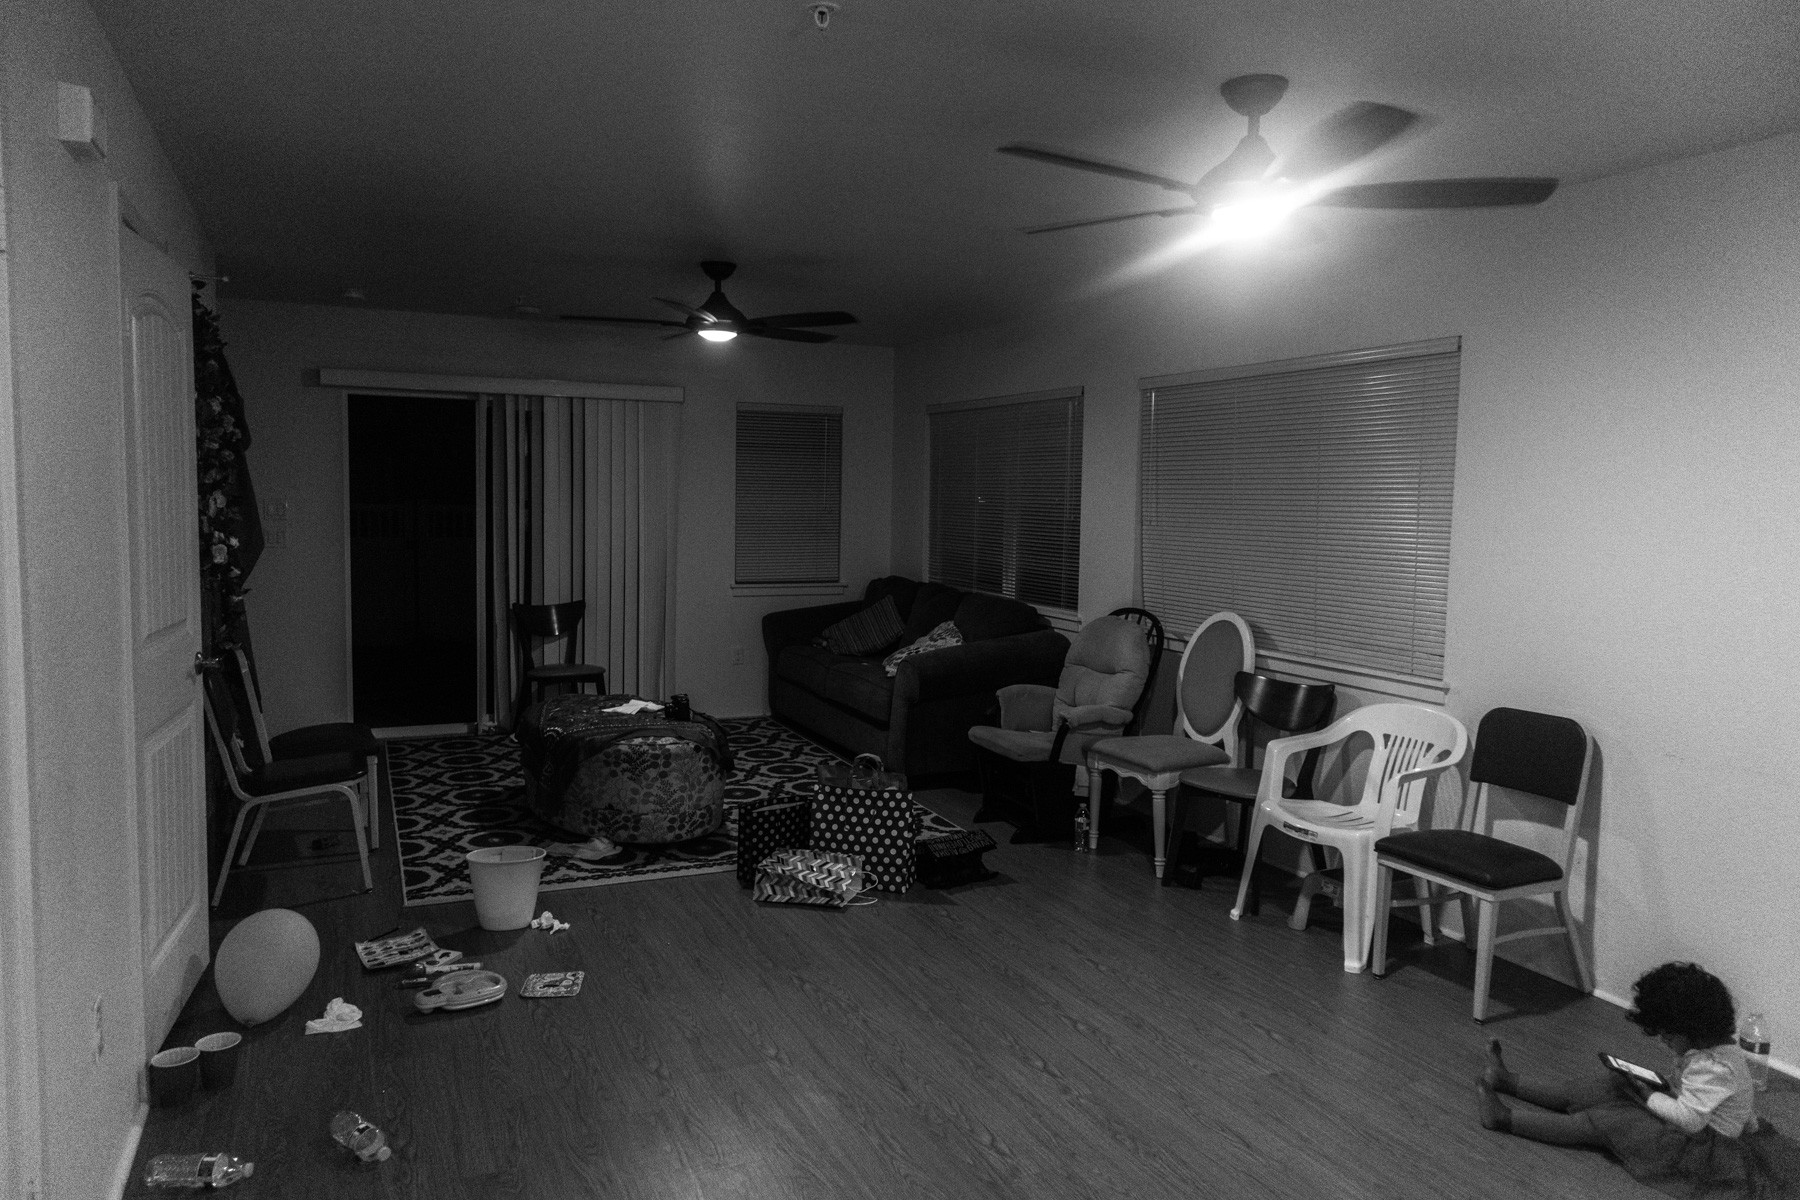 The house which was crowded with all the guests for two days back to backs seemed deserted in just a moment. The ceremony hosted around a hundred people in this compact house staring from the 'Gaye Holud' ceremony and the reception night. Kapolei, HI, December 2017The house which was crowded with all the guests for two days back to backs seemed deserted in just a moment. The ceremony hosted around a hundred people in this compact house staring from the 'Gaye Holud' ceremony and the reception night. Kapolei, HI, December 2017